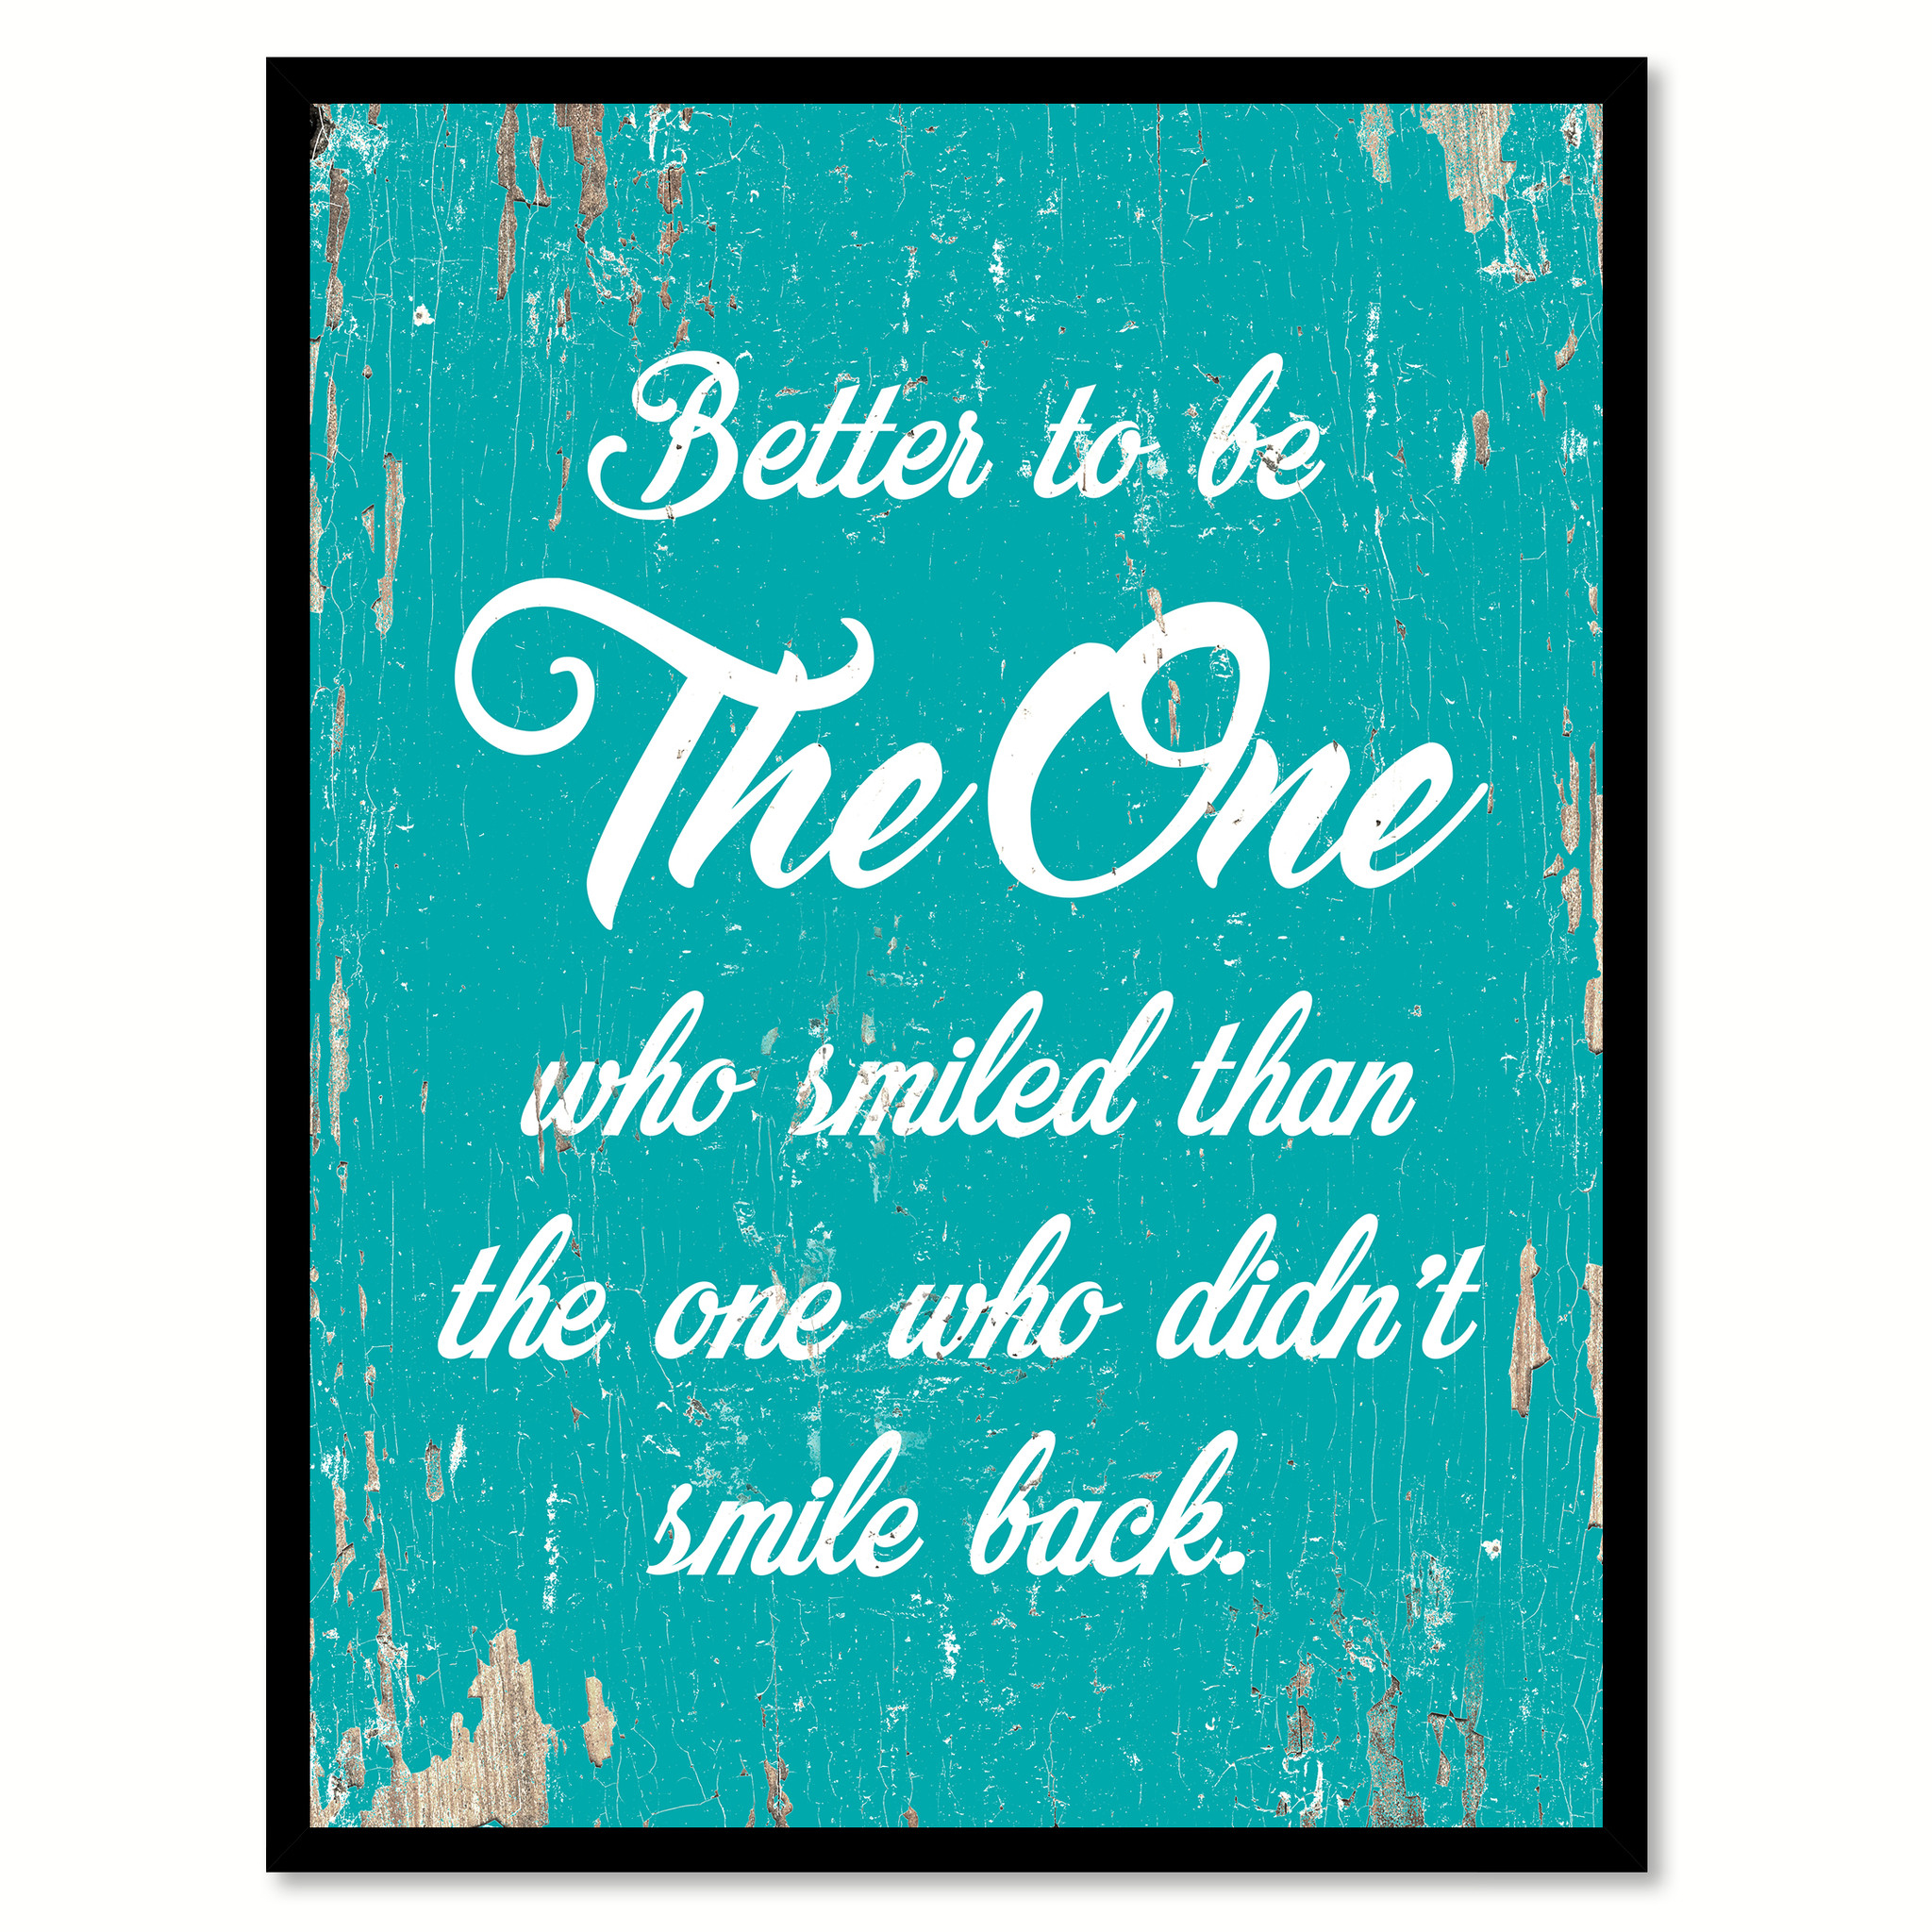 "Better To Be The One Who Smiled Than The One Quote Saying Canvas Print with Picture Frame Home Decor Wall Art Gifts 111701 - 7""x9\"""